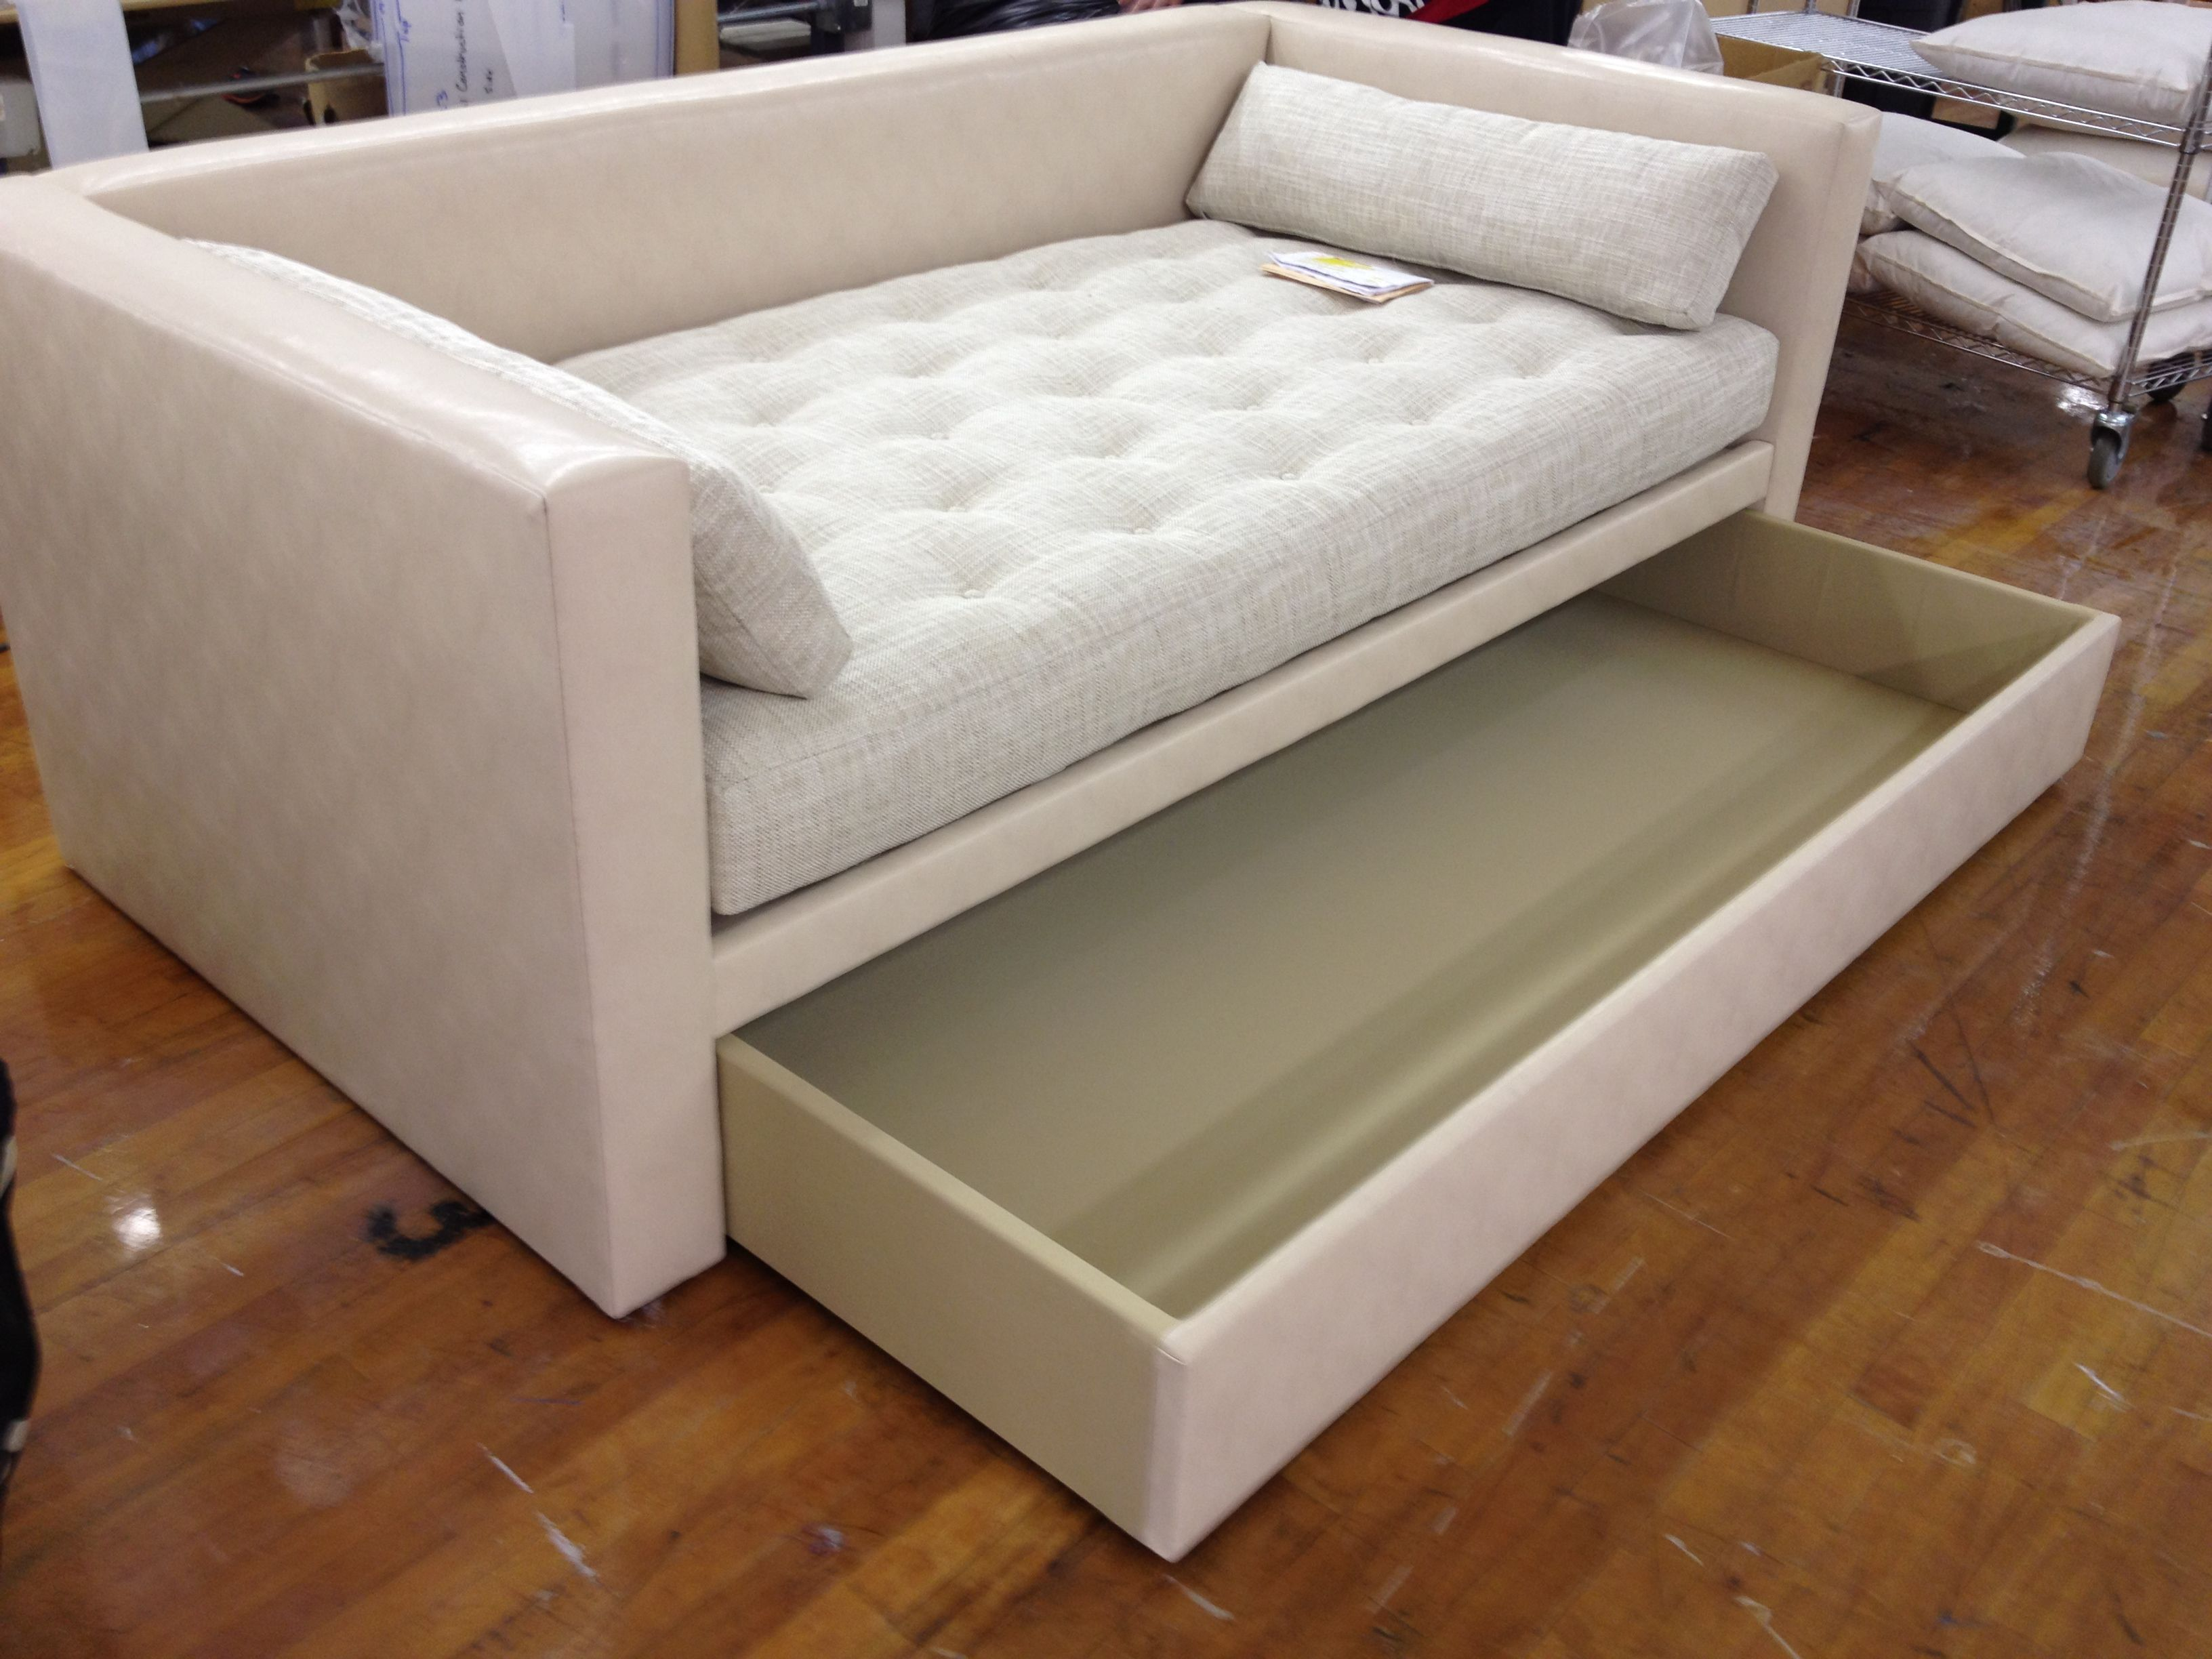 Modern Sofa With Trundle Roche Bobois Mah Jong Beds Italian Bed Or